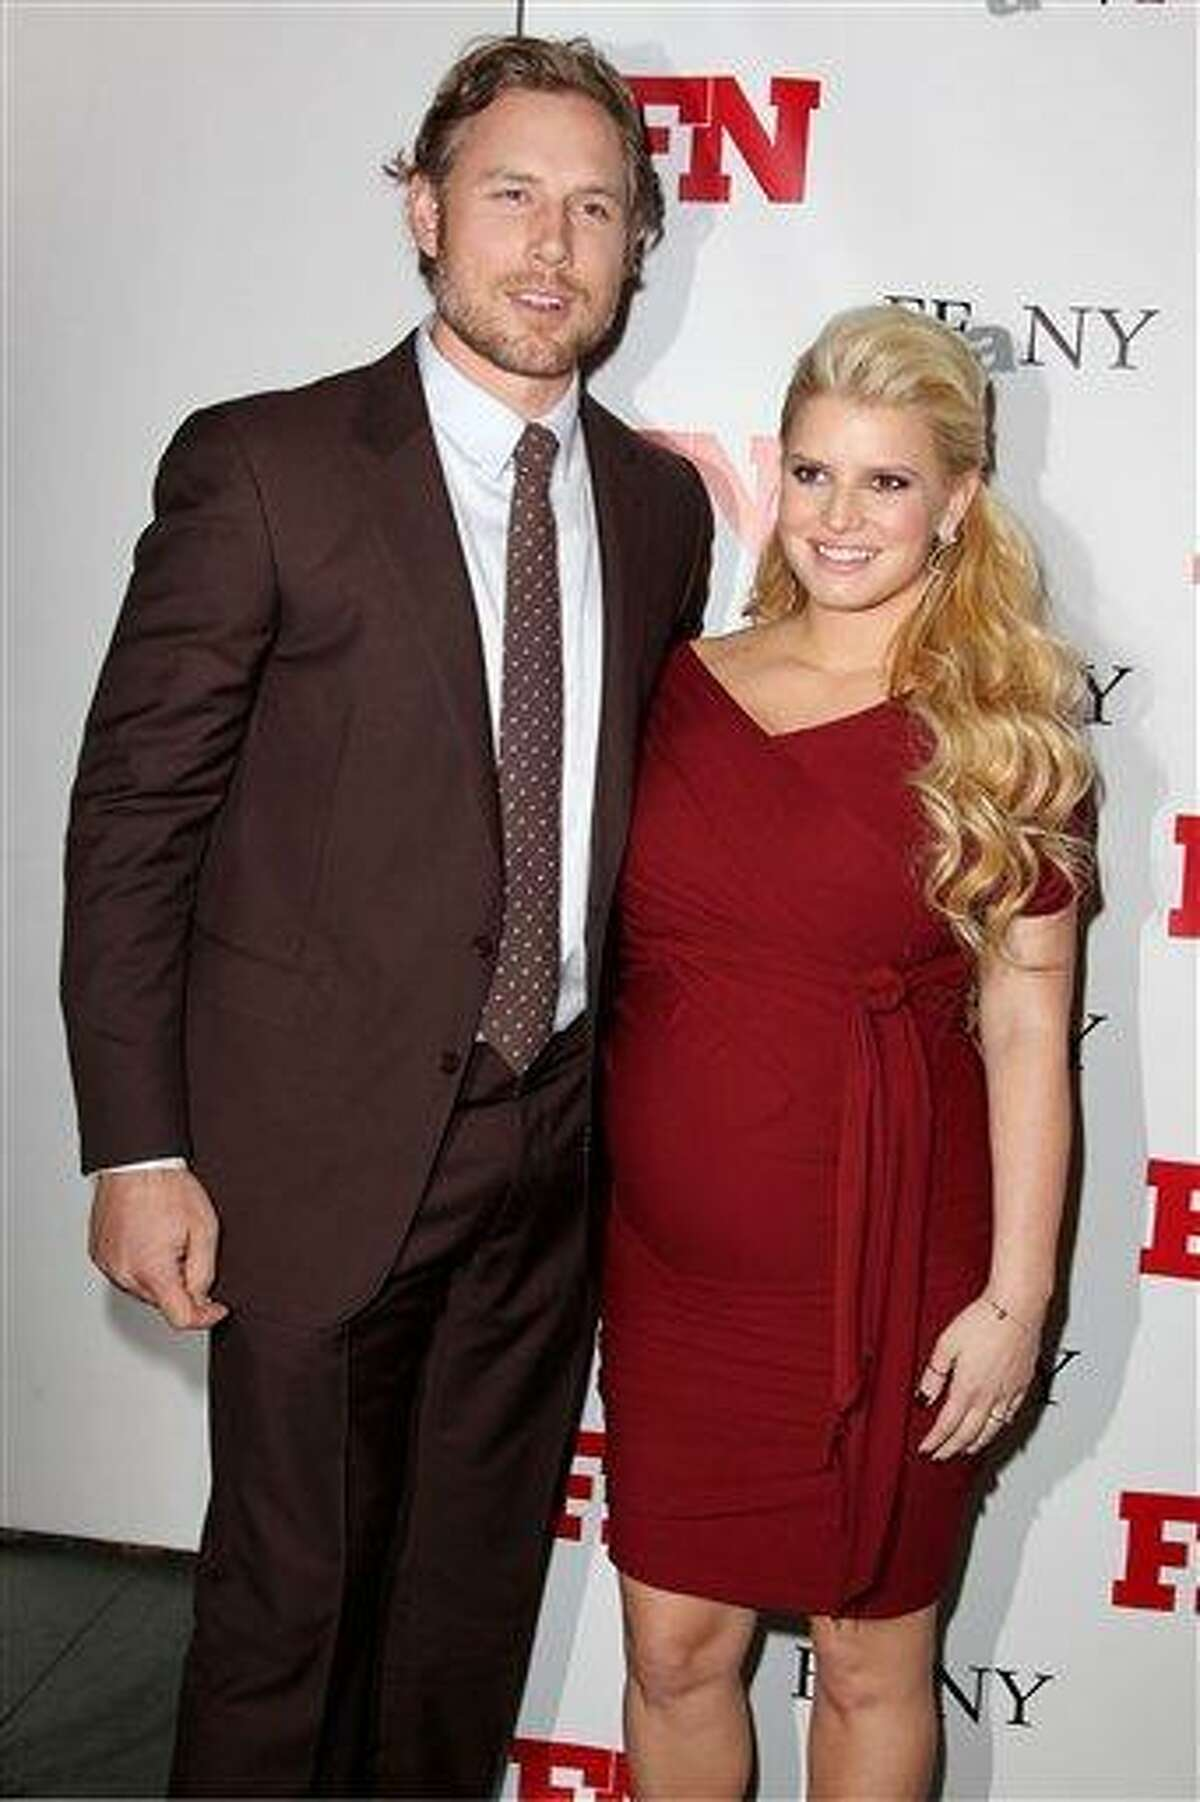 In this Nov. 29, 2011 file photo, singer Jessica Simpson, right, poses with her fiance Eric Johnson at the 25th Annual Footwear News Achievement Awards at The Museum of Modern Art in New York. A publicist for the singer confirmed Simpson gave birth to a daughter named Maxwell Drew Johnson in Los Angeles on Tuesday, May 1. Maxwell weighed 9 lbs. 13 ounces, said publicist Lauren Auslander. It's the first child for 31-year-old Simpson and her 32-year-old fiance Eric Johnson, a former NFL player. Associated Press